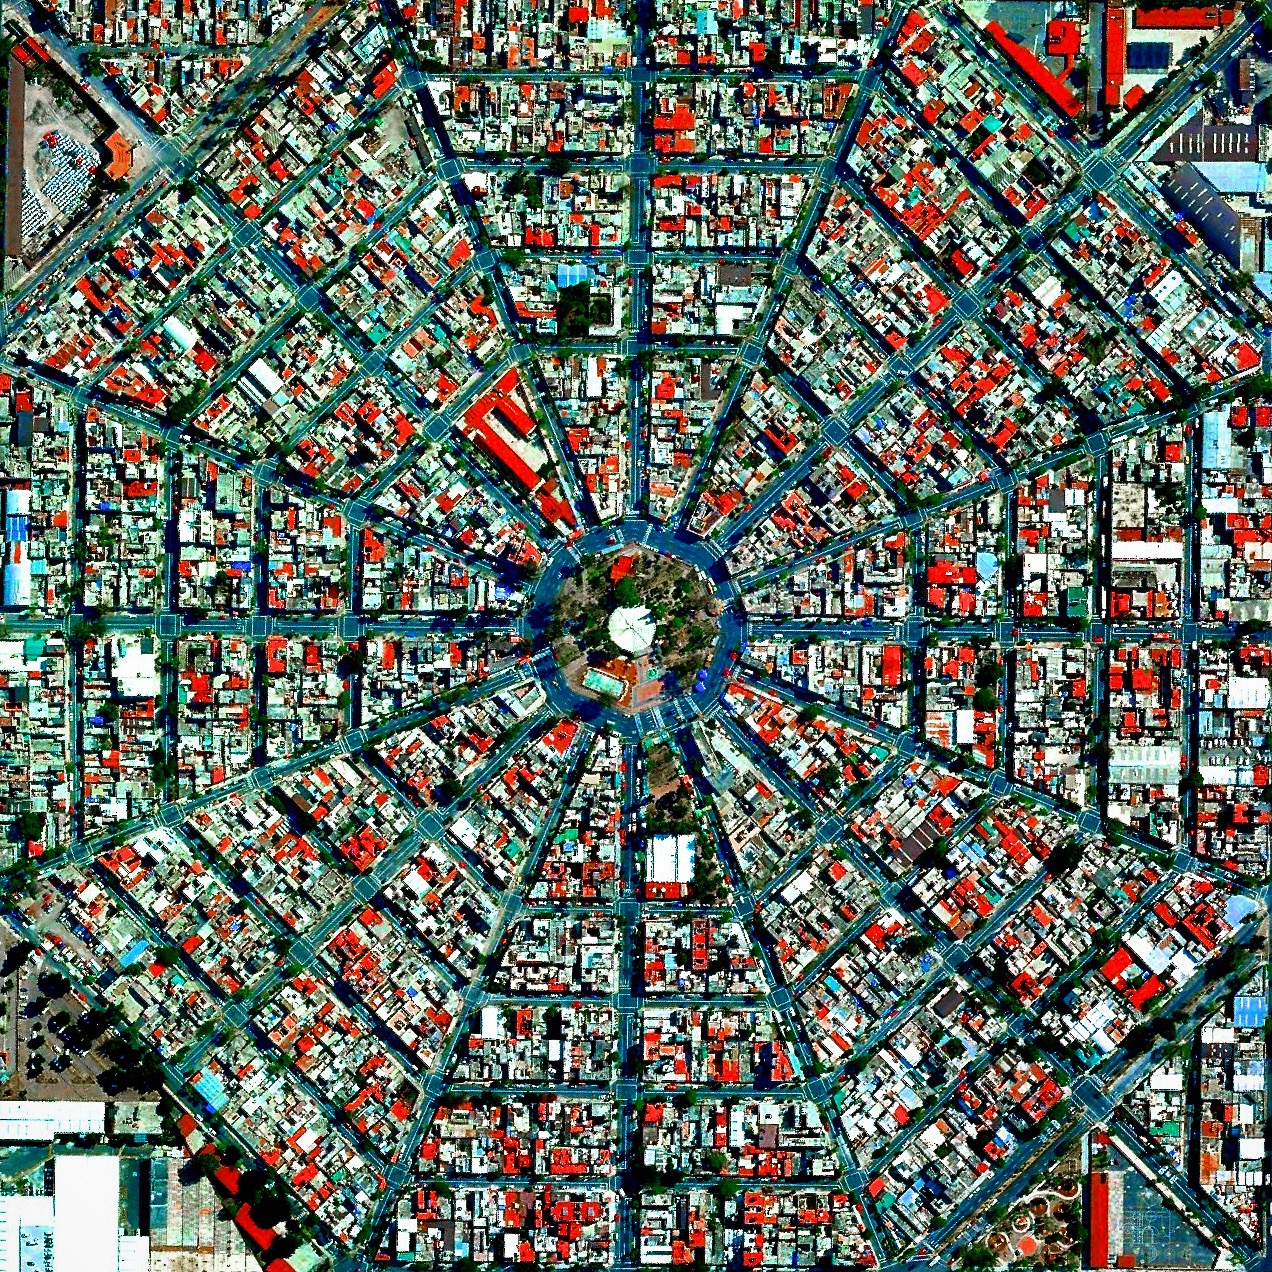 """8/22/2016   Plaza Del Ejecutivo    Mexico City, Mexico    19.420511533°, -99.08808712°     This week we will be looking at fascinating examples of urban planning - a major focus of the Where We Design chapter in our new book """"Overview"""". To start off, here is one of our favorite shots of the radiating streets that surround the Plaza Del Ejecutivo in Mexico City, Mexico. If you have examples of other cities that you think might look particularly mesmerizing from above, please let us know in the comments on Facebook."""